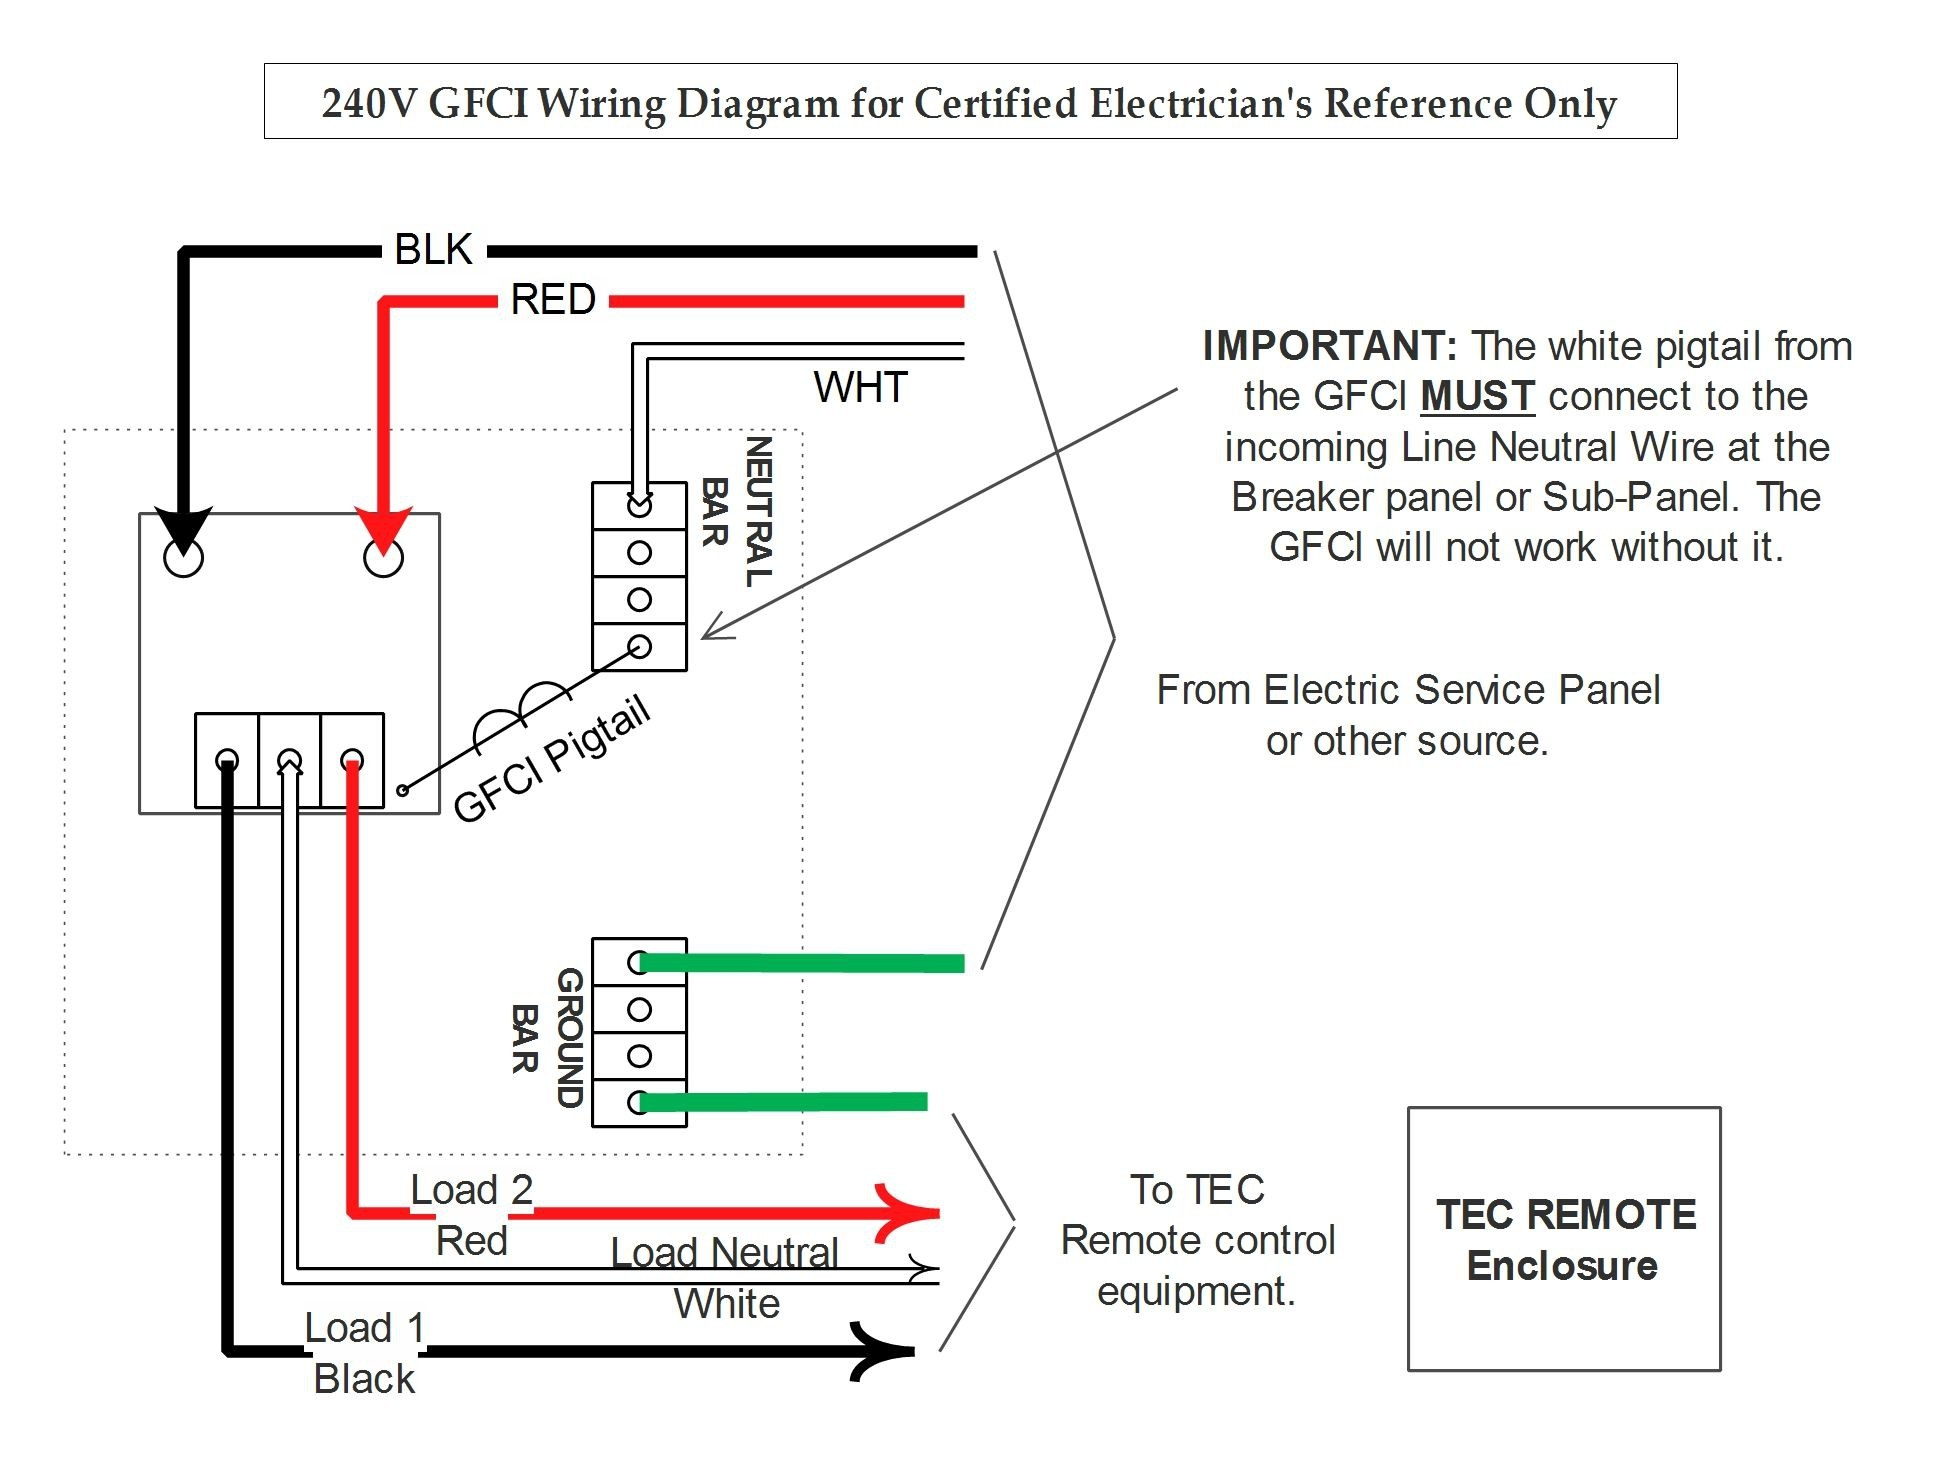 farmall h 12 volt conversion wiring diagram - 6 volt to 12 volt conversion wiring  diagram